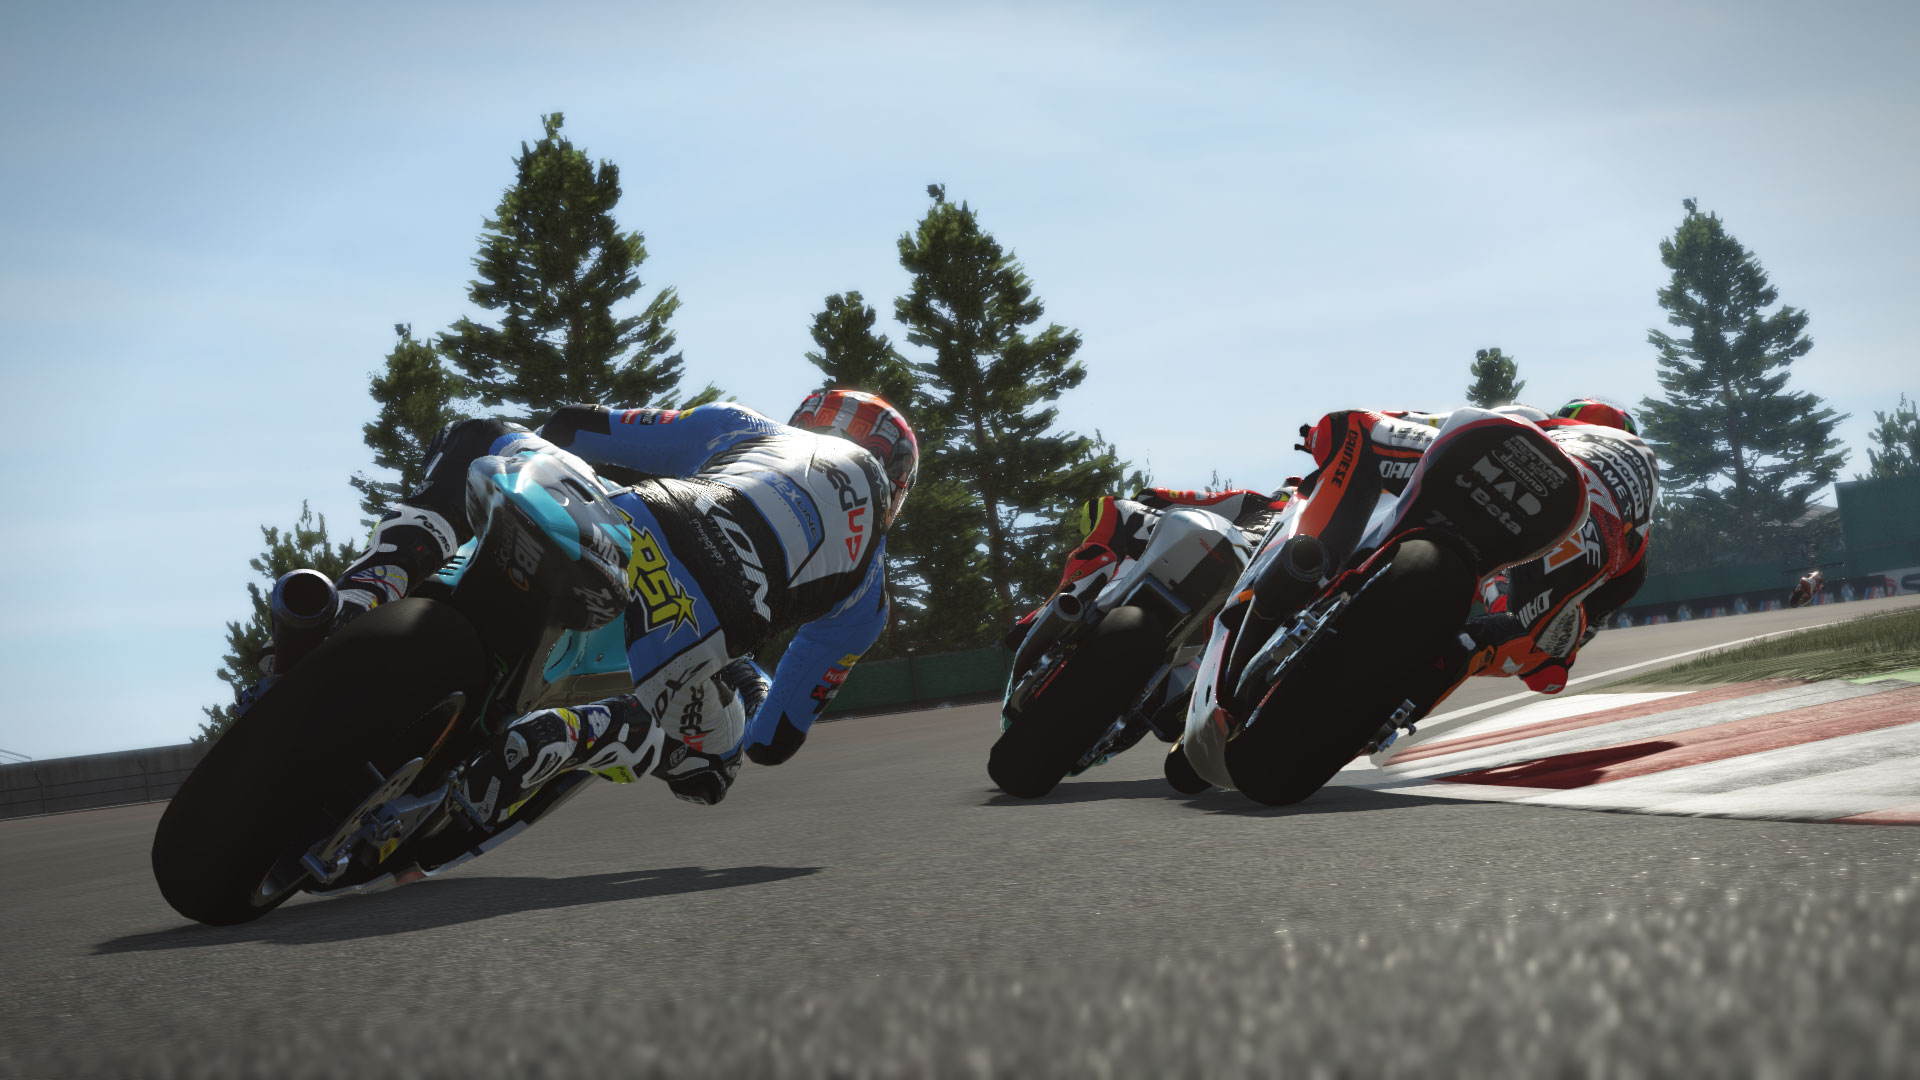 free download motogp 2017 cracked by codex include all dlc and latest update copiapop diskokosmiko